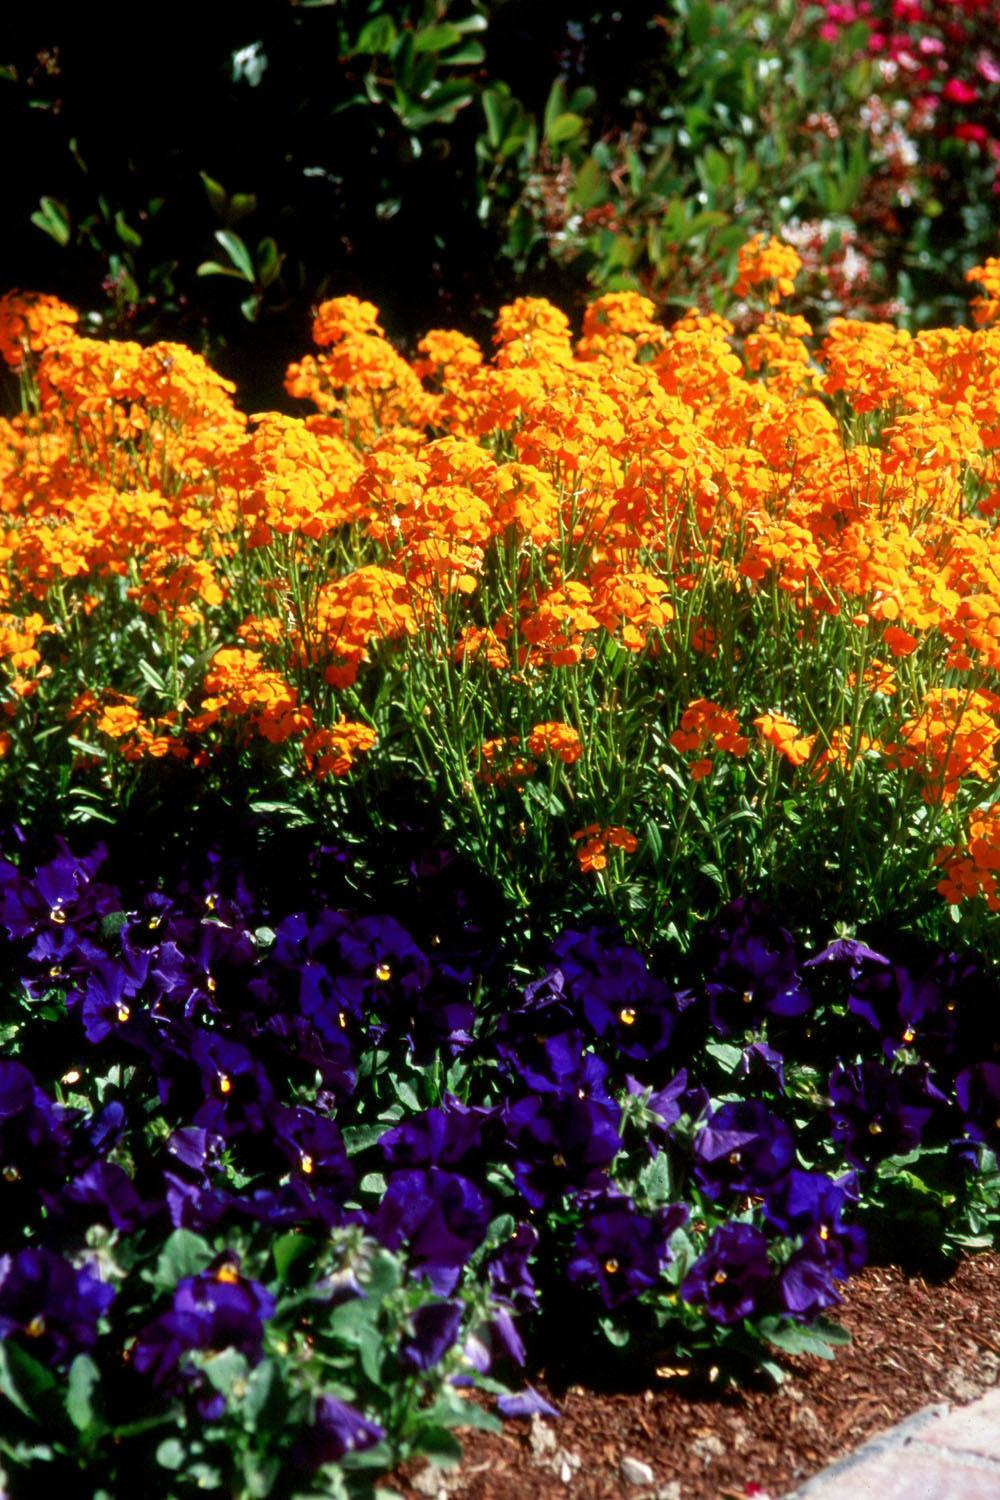 Citrona Orange will stop traffic with displays such as this one as it towers over Matrix Blue Blotch pansies.